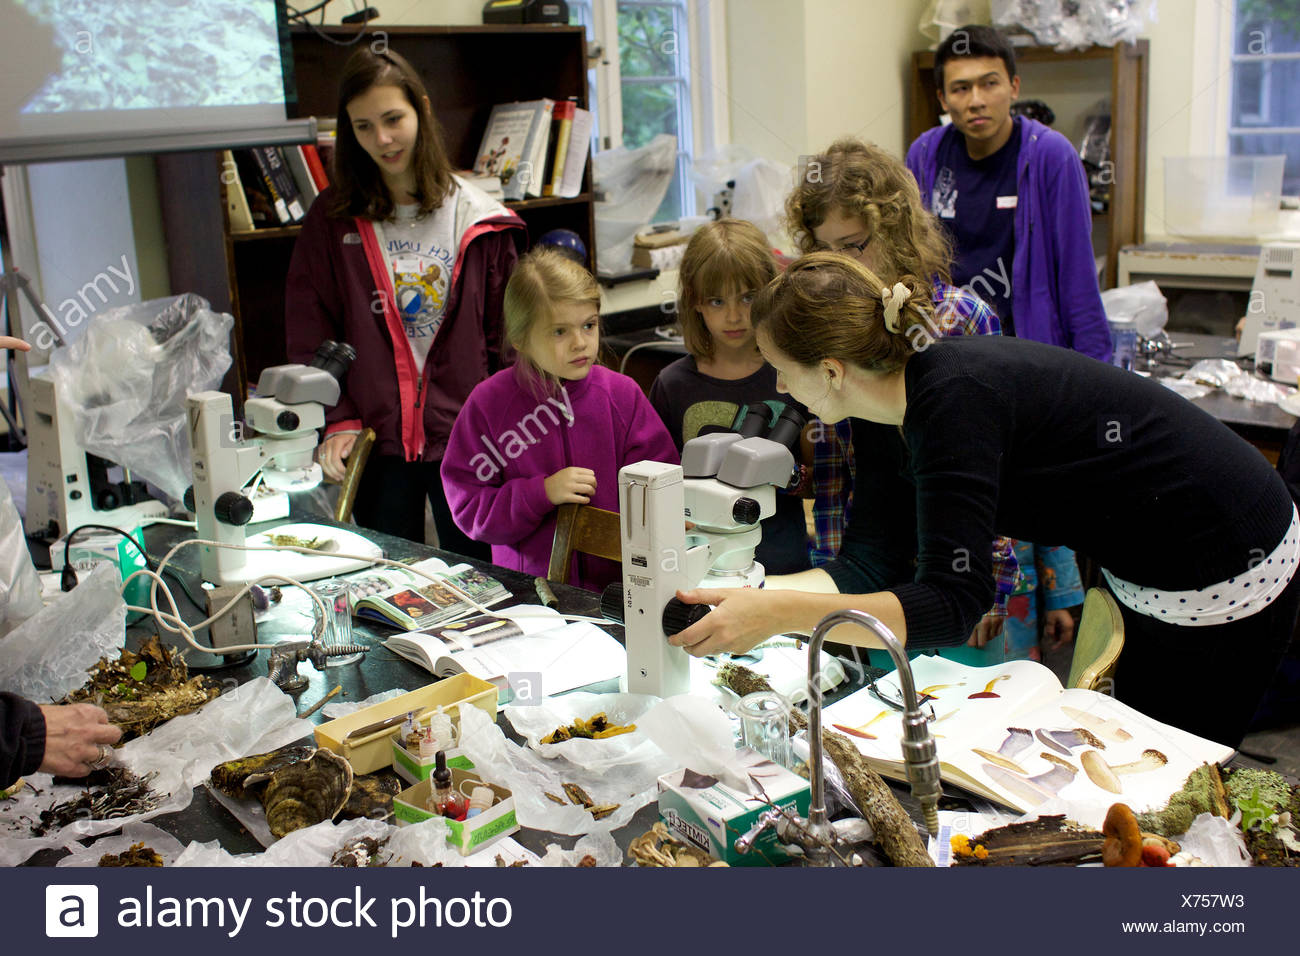 A mycology student shows young girls how to use a microscope. - Stock Image